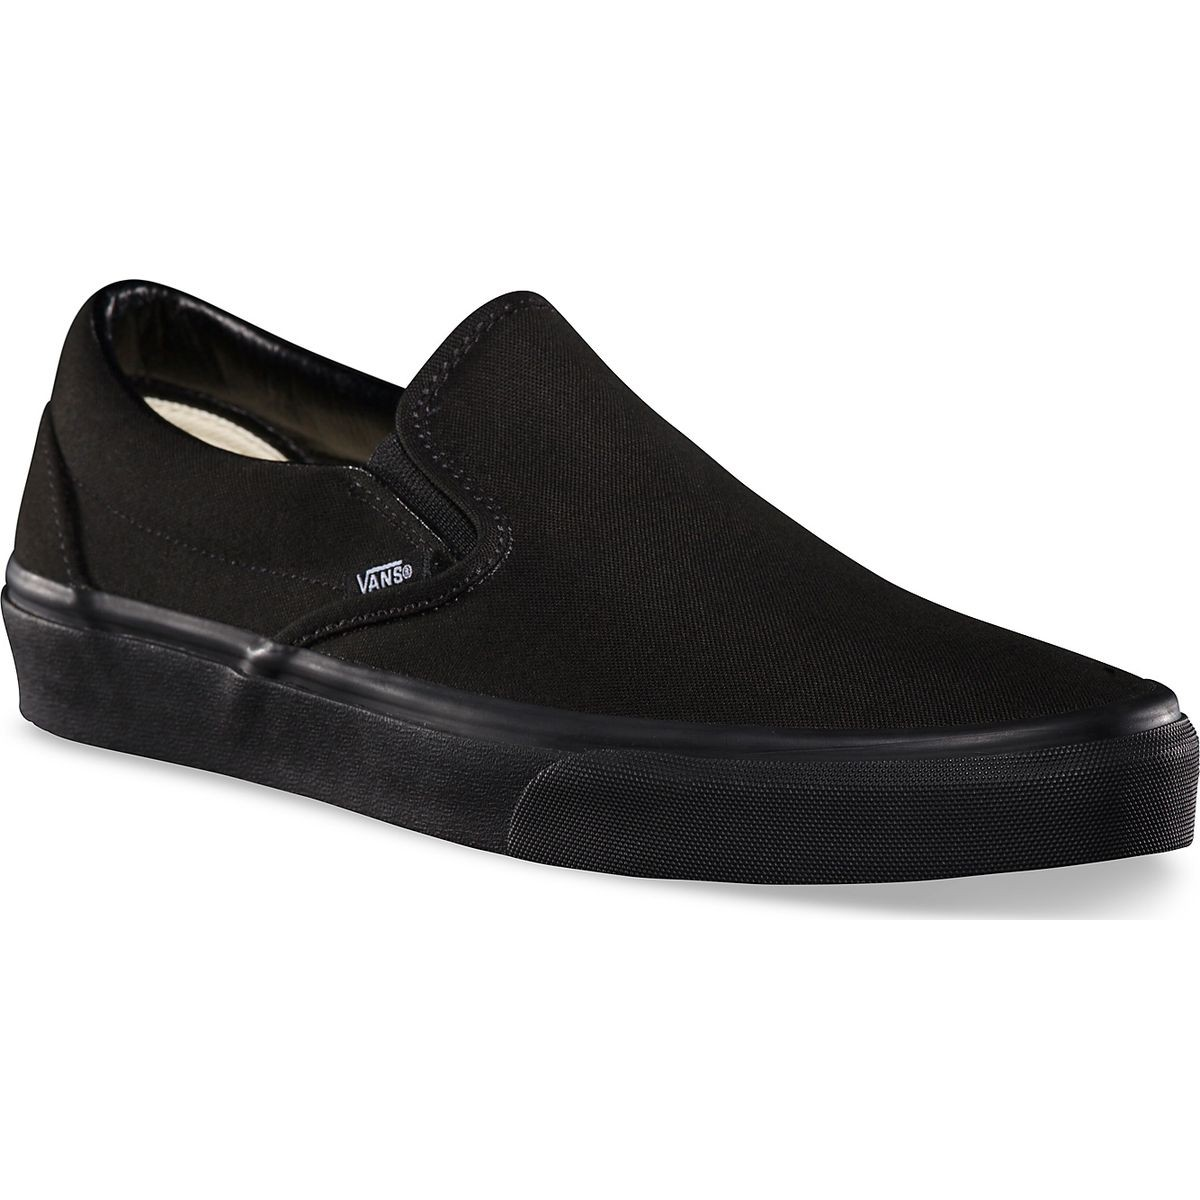 Vans Classic Slip-On Shoes - Black/Black - 6.0